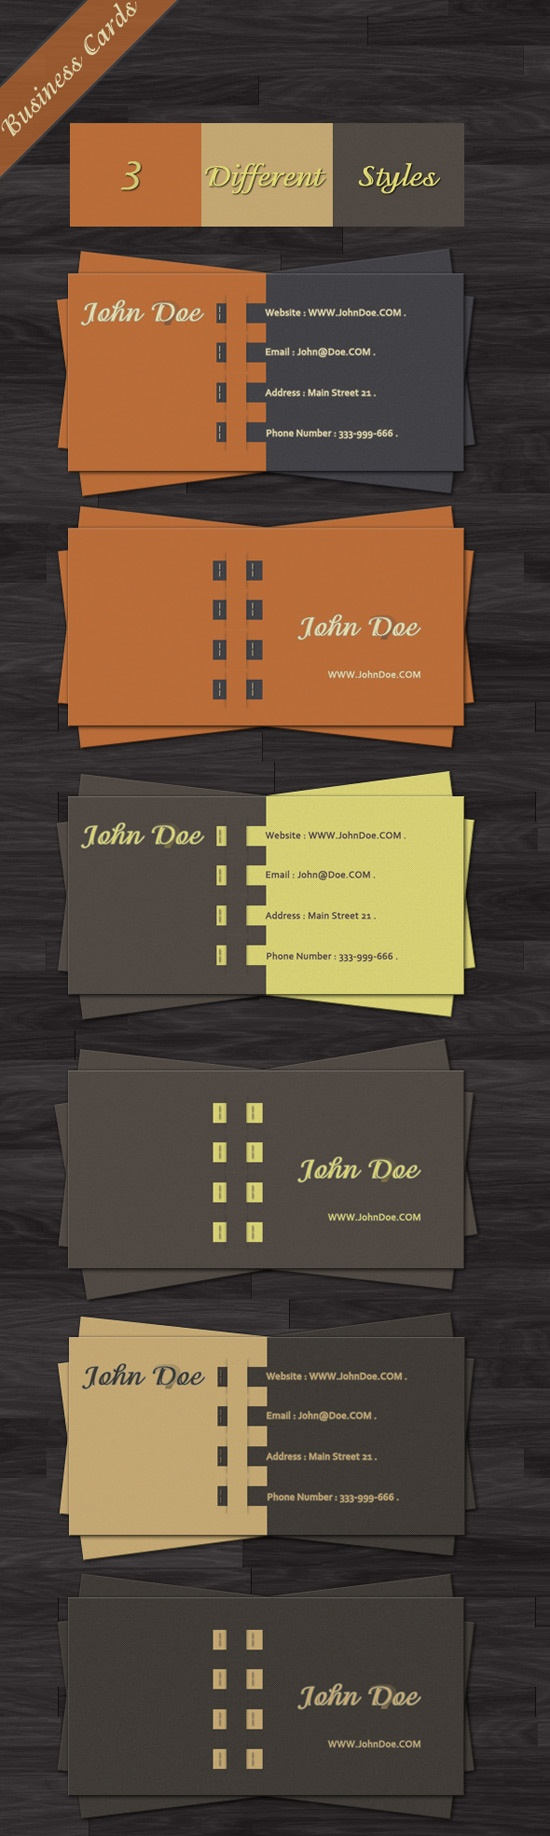 Best 25 free business cards ideas on pinterest free business free business card template magicingreecefo Choice Image